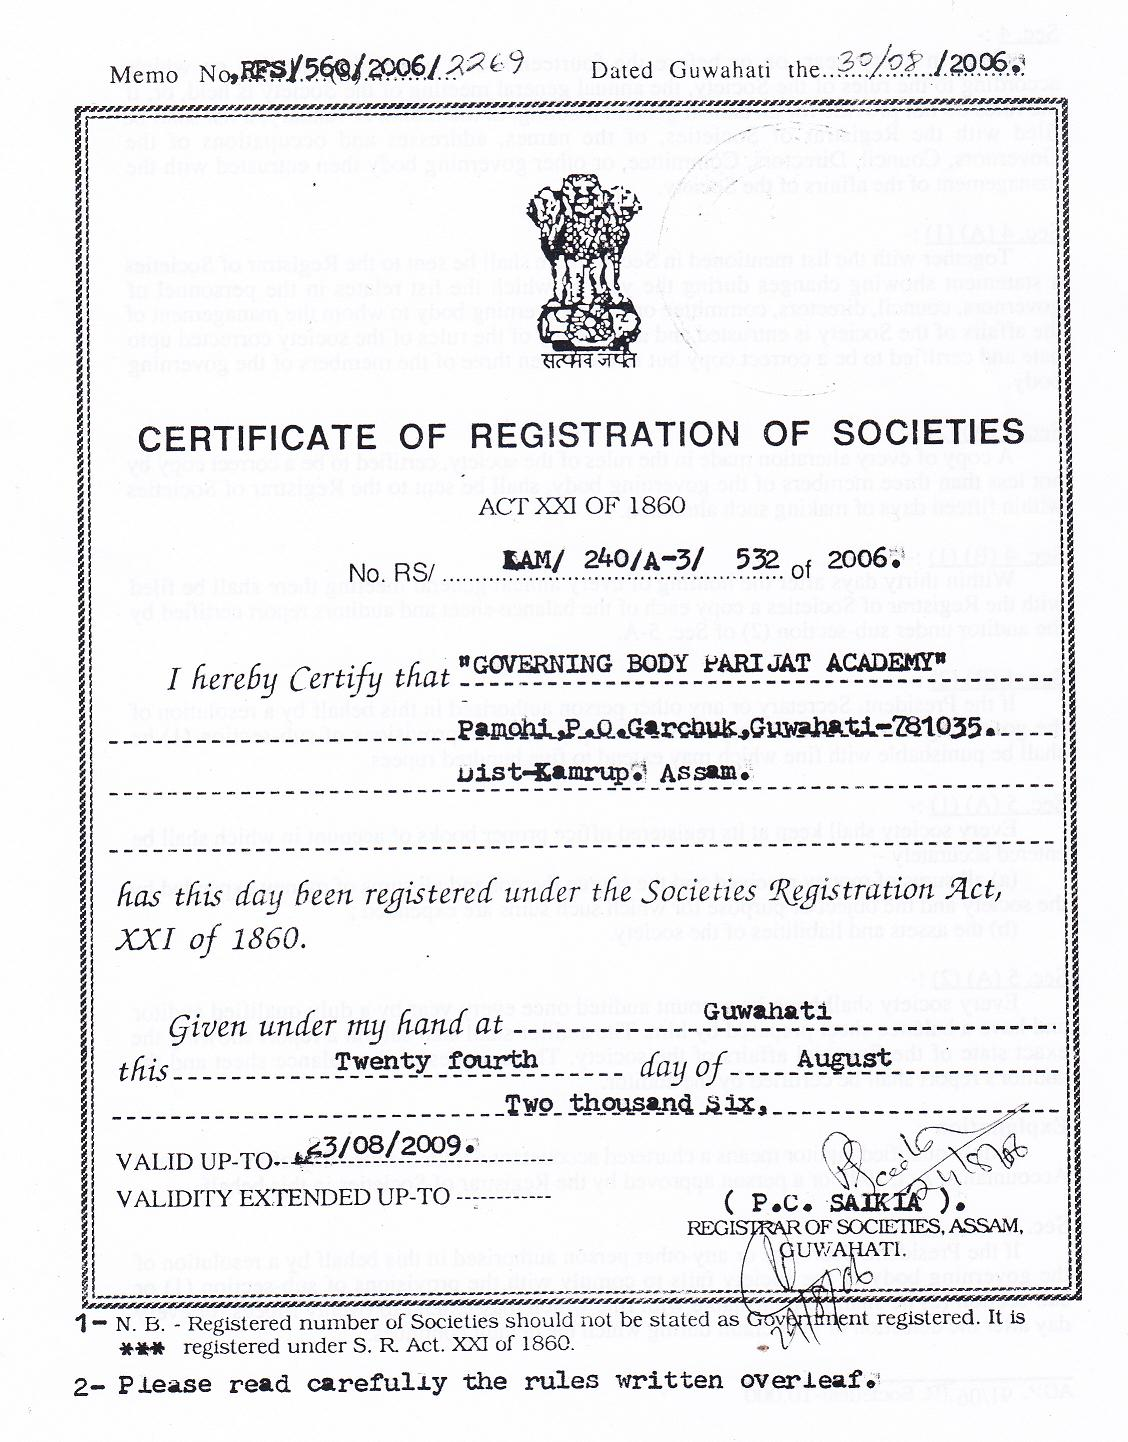 Parijat academy registered under societies registration act xxi trust deed as charitable trust registered in guwahati deputy commissioner court kamrupm assam india 1betcityfo Images